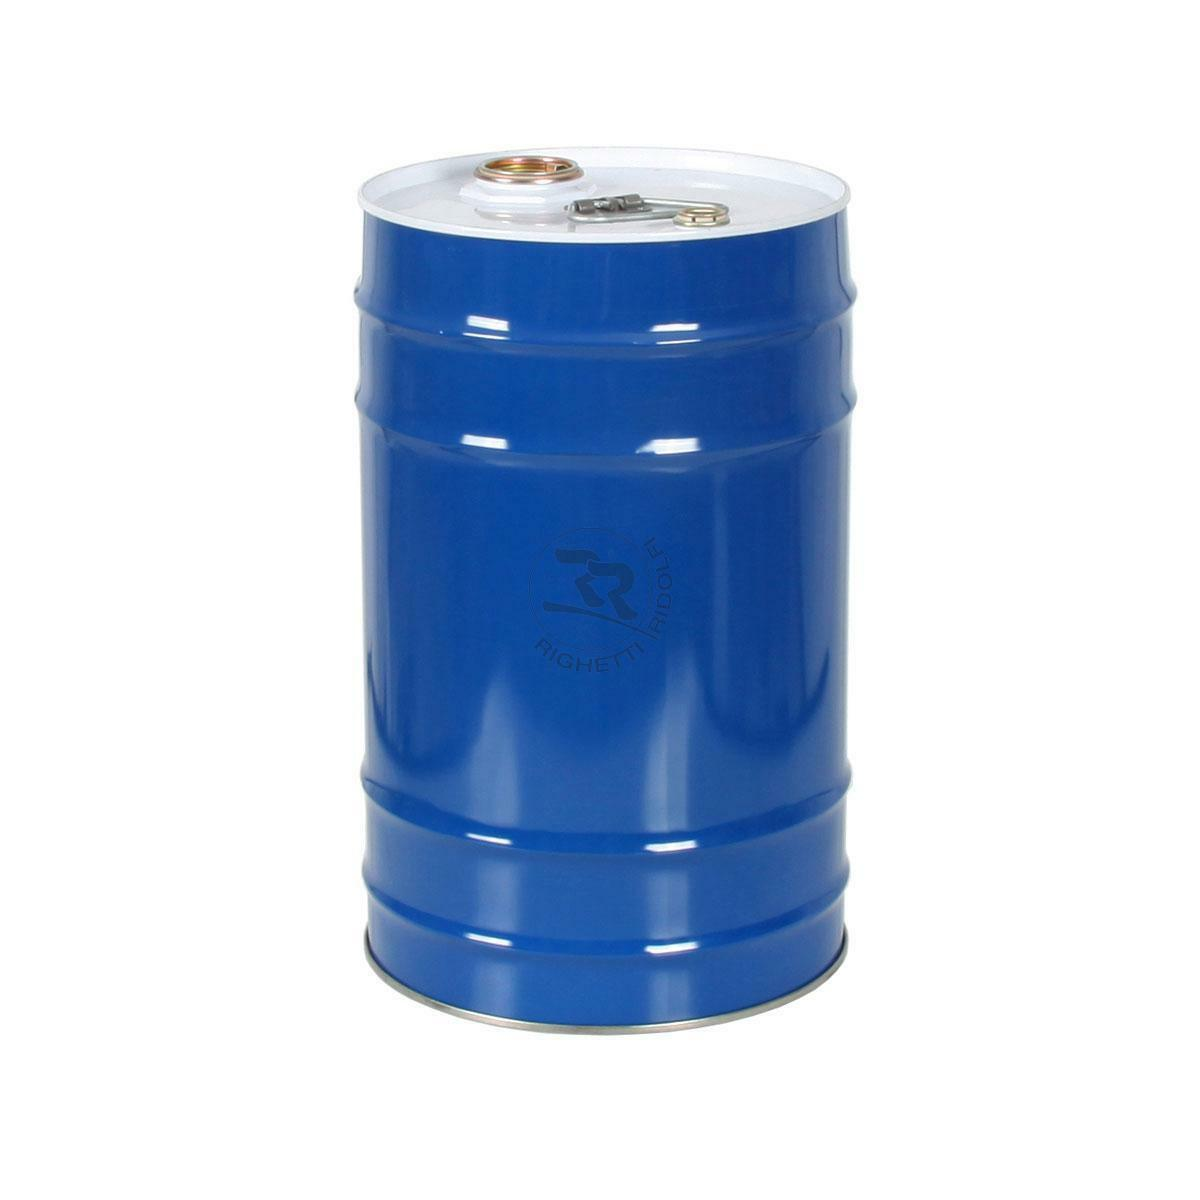 METAL FUEL CAN 25LTS WITH TRAP